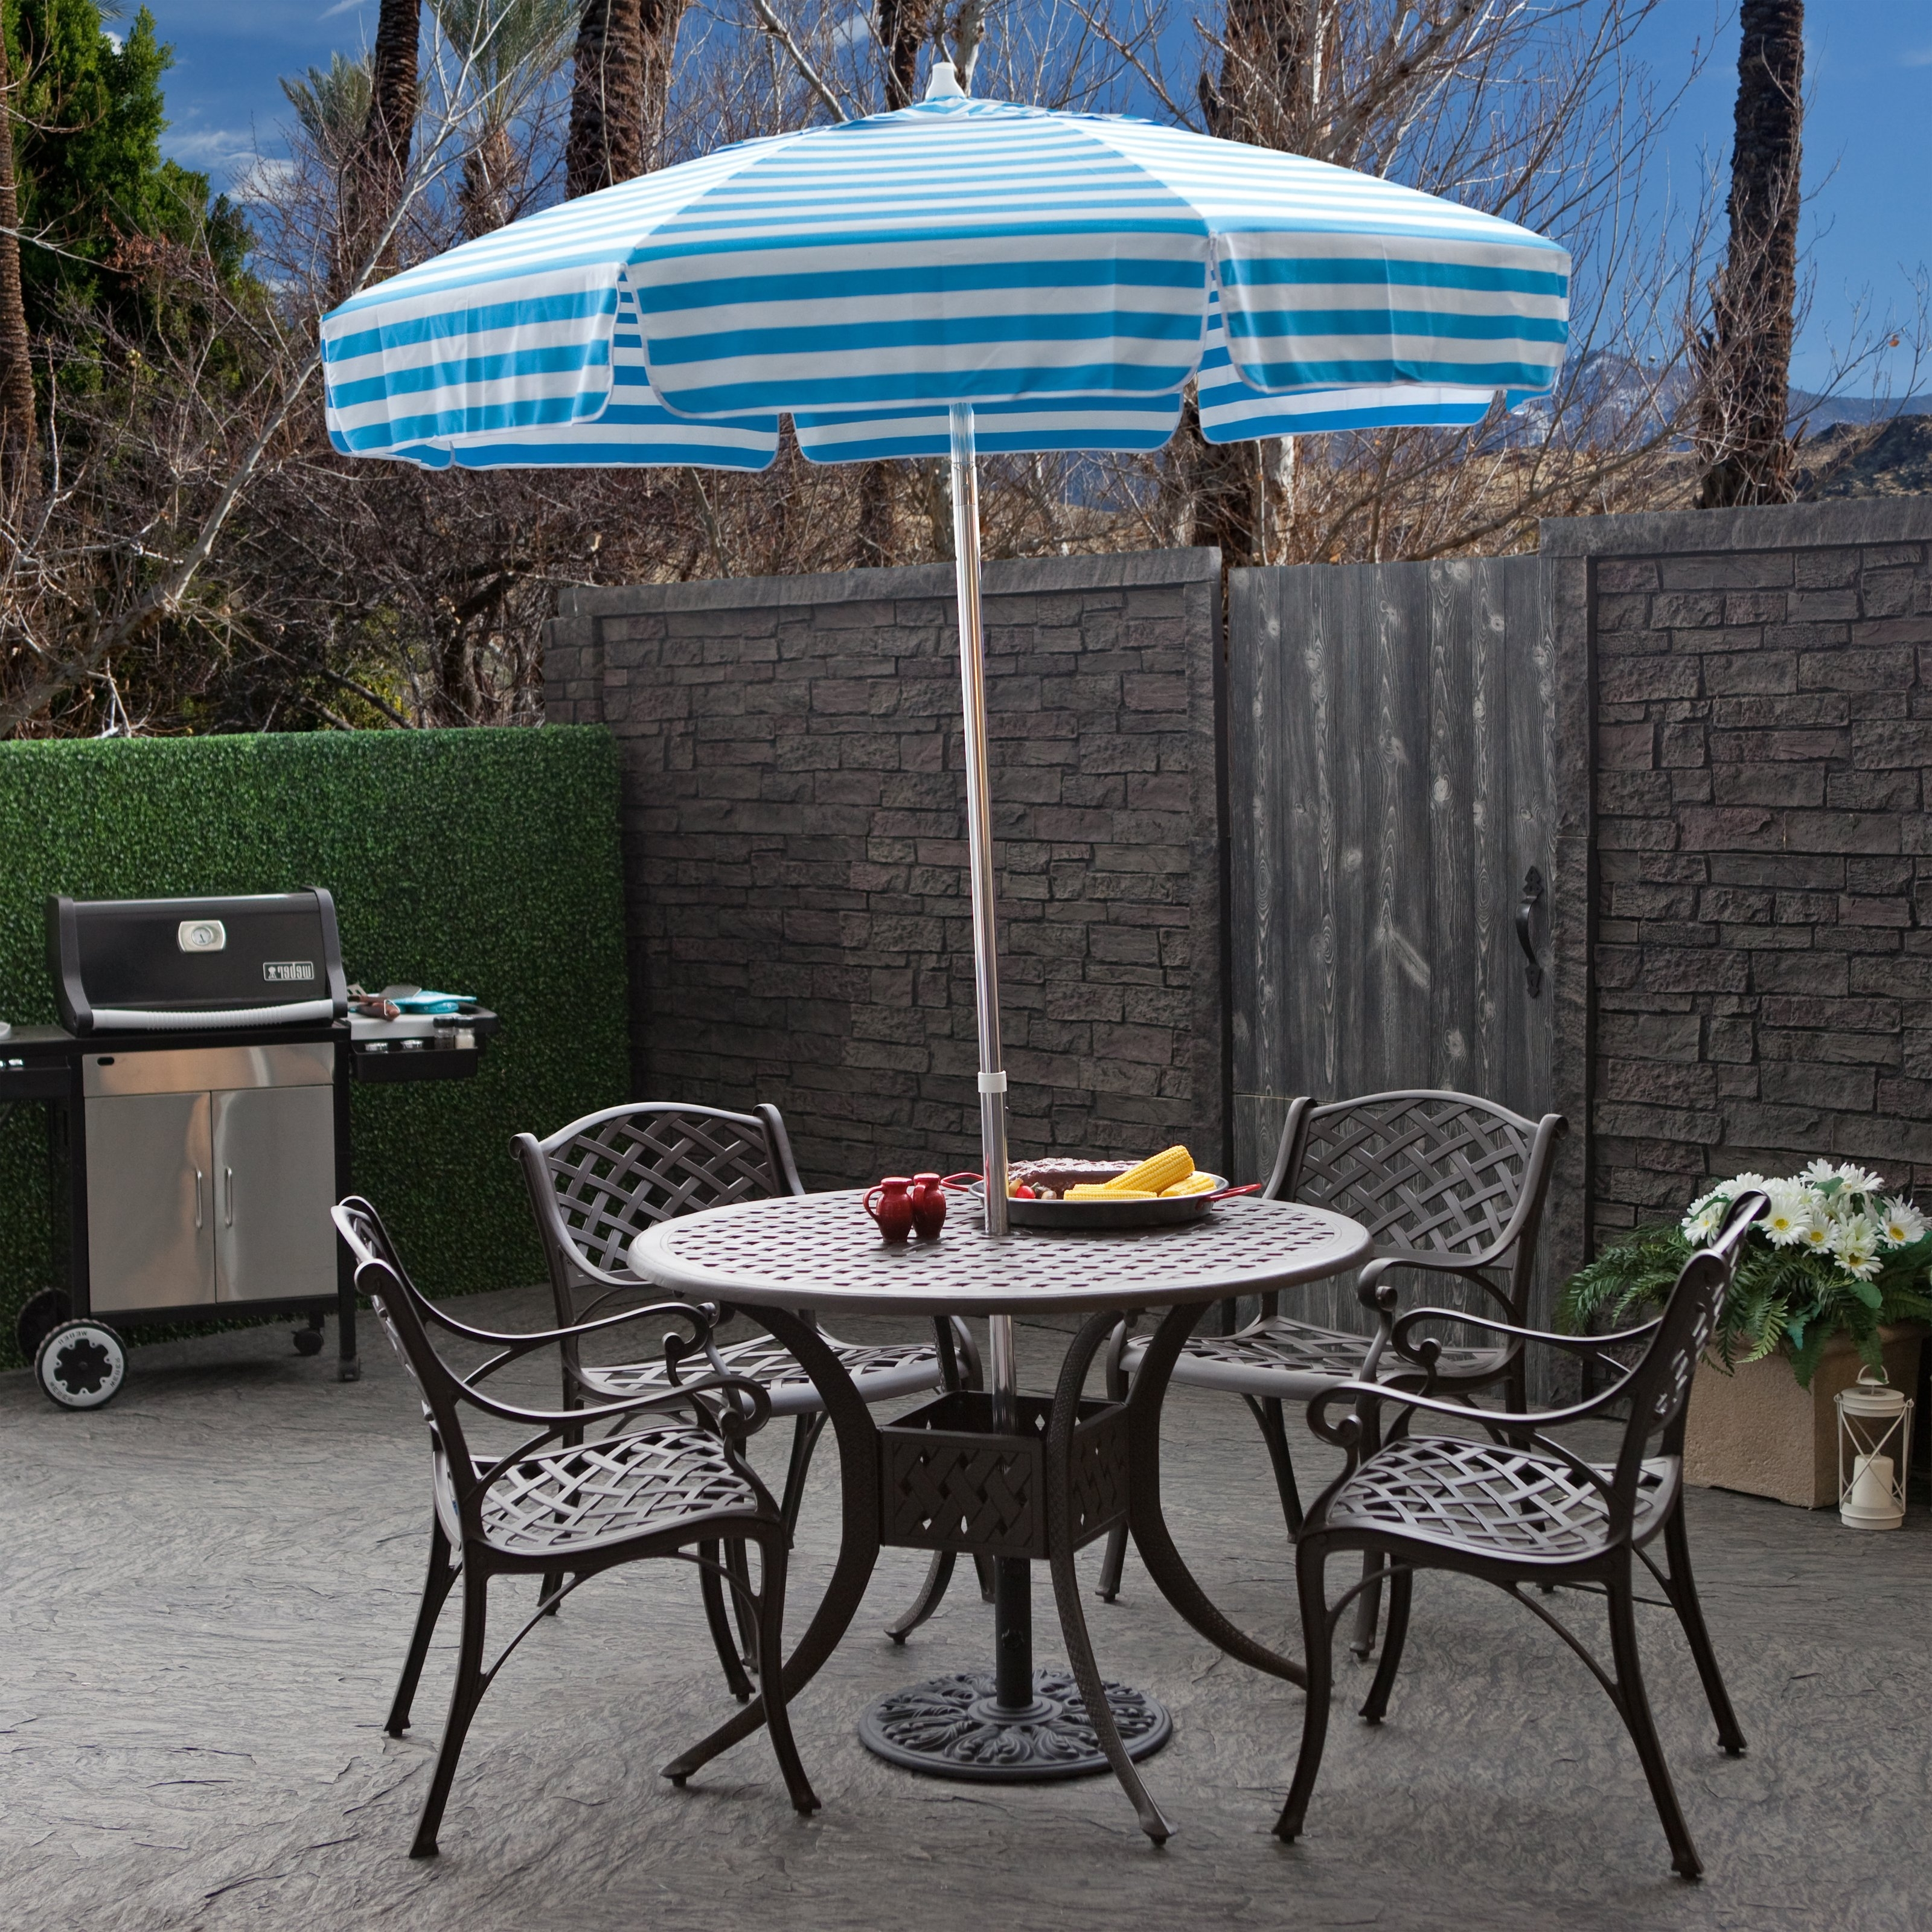 Incredible Patio Table Umbrellas Destinationgear 6 Ft Aluminum Within Most Recent Small Patio Tables With Umbrellas Hole (View 5 of 20)